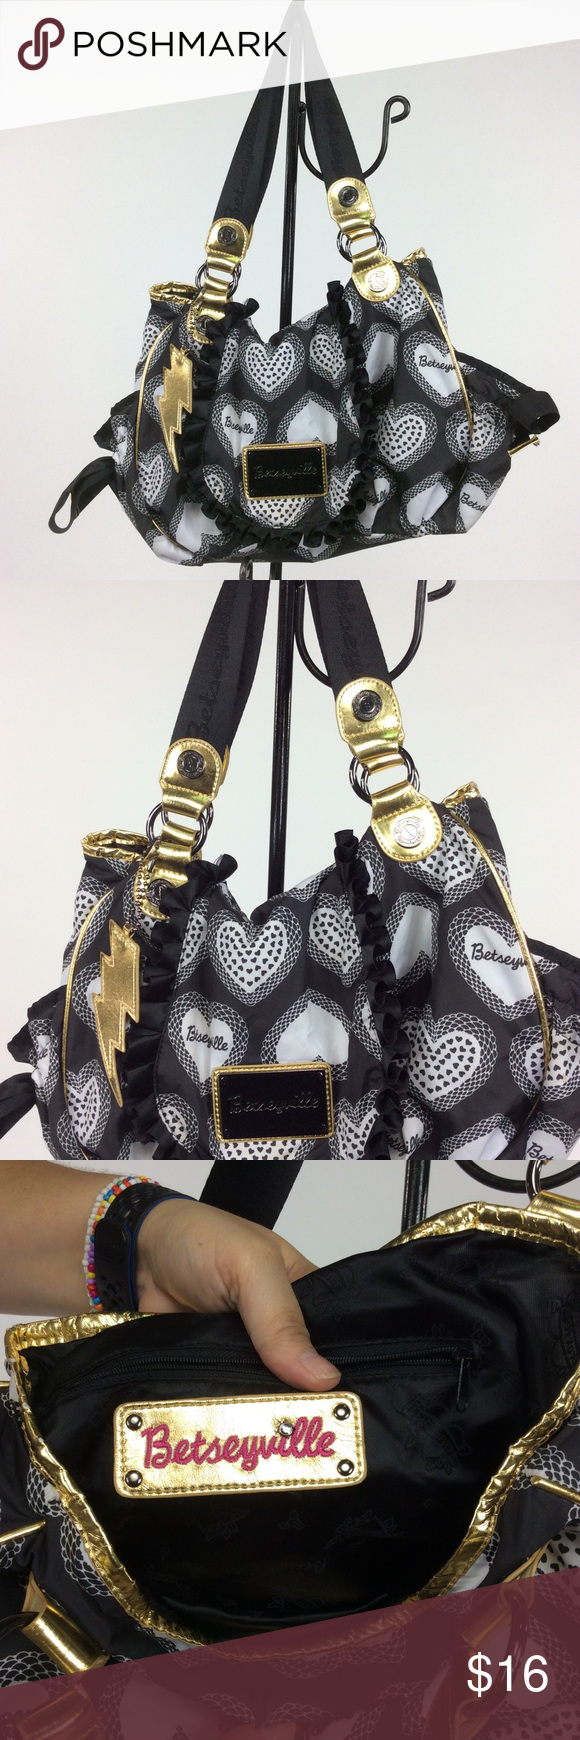 Betseyville  Black and White Purse 💞 BUNDLE 3 OR MORE ITEMS AND SAVE 20% 💞 Any questions let me know. 🤔 betseyville Bags Shoulder Bags